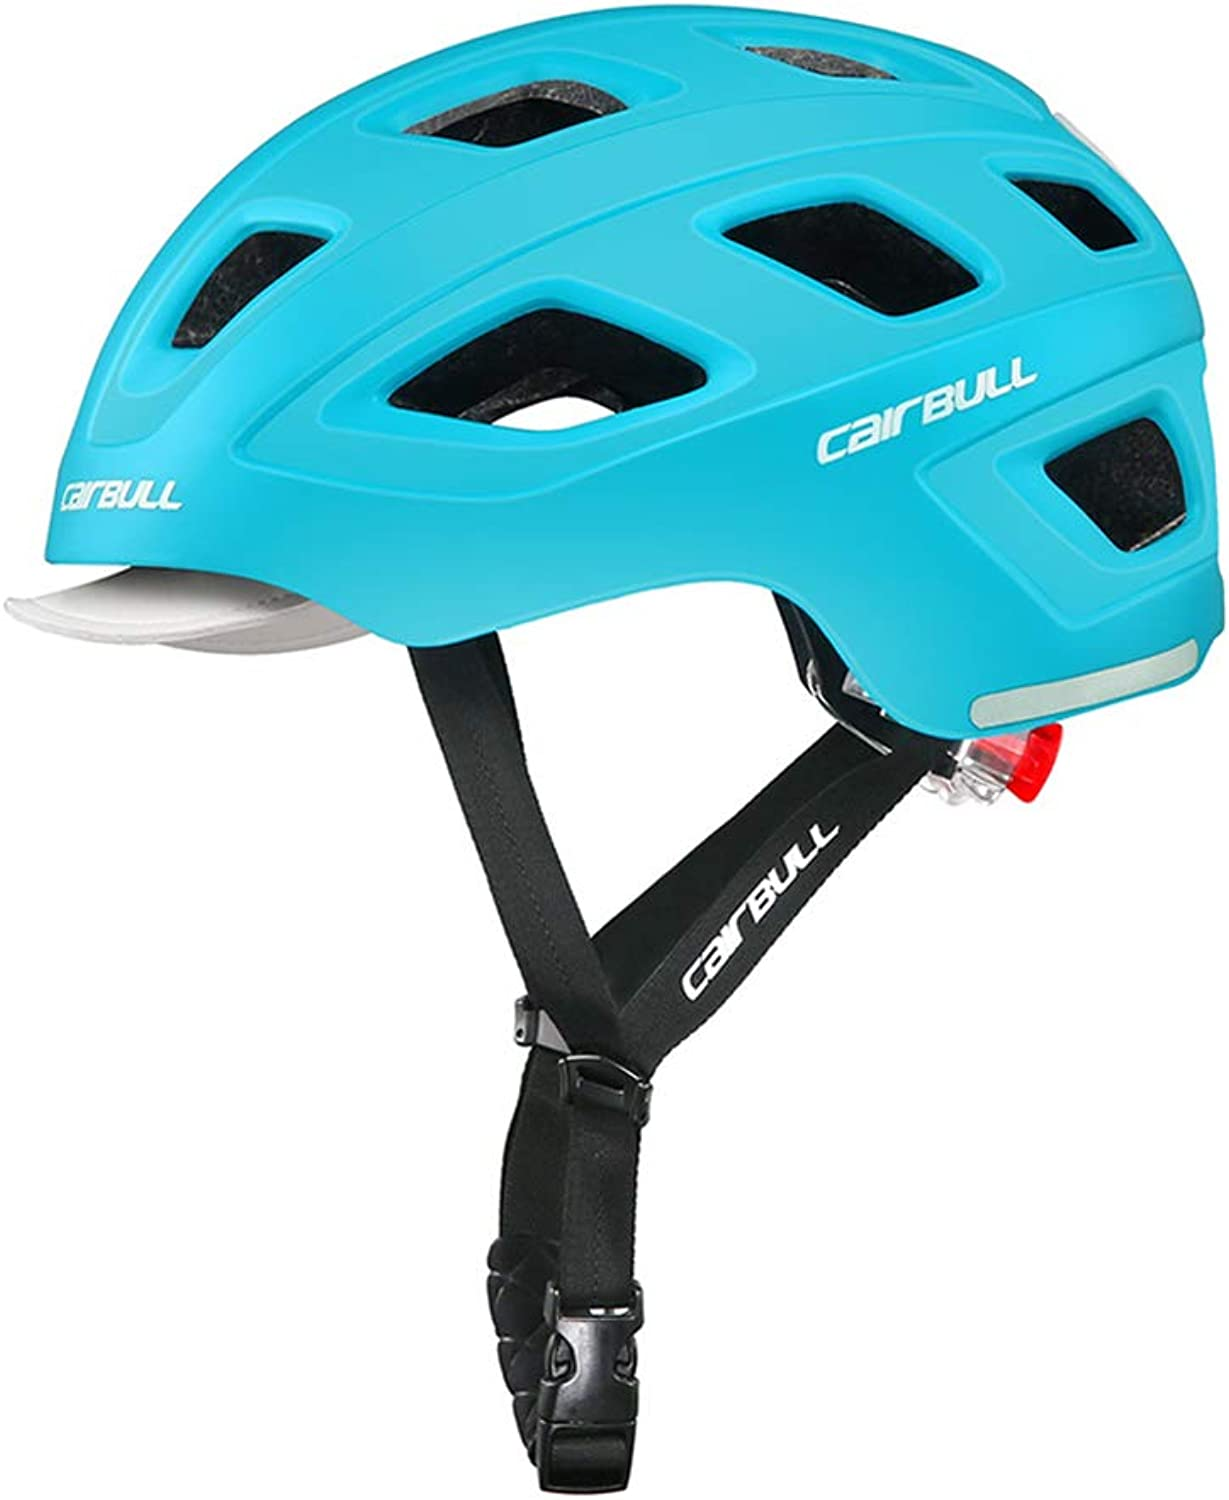 HAohAnwuyg Bike Helmet,Sports Equipment,Cairbull Castle Lightweight MTB Bicycle Cycling Safety Helmet with Taillight  White